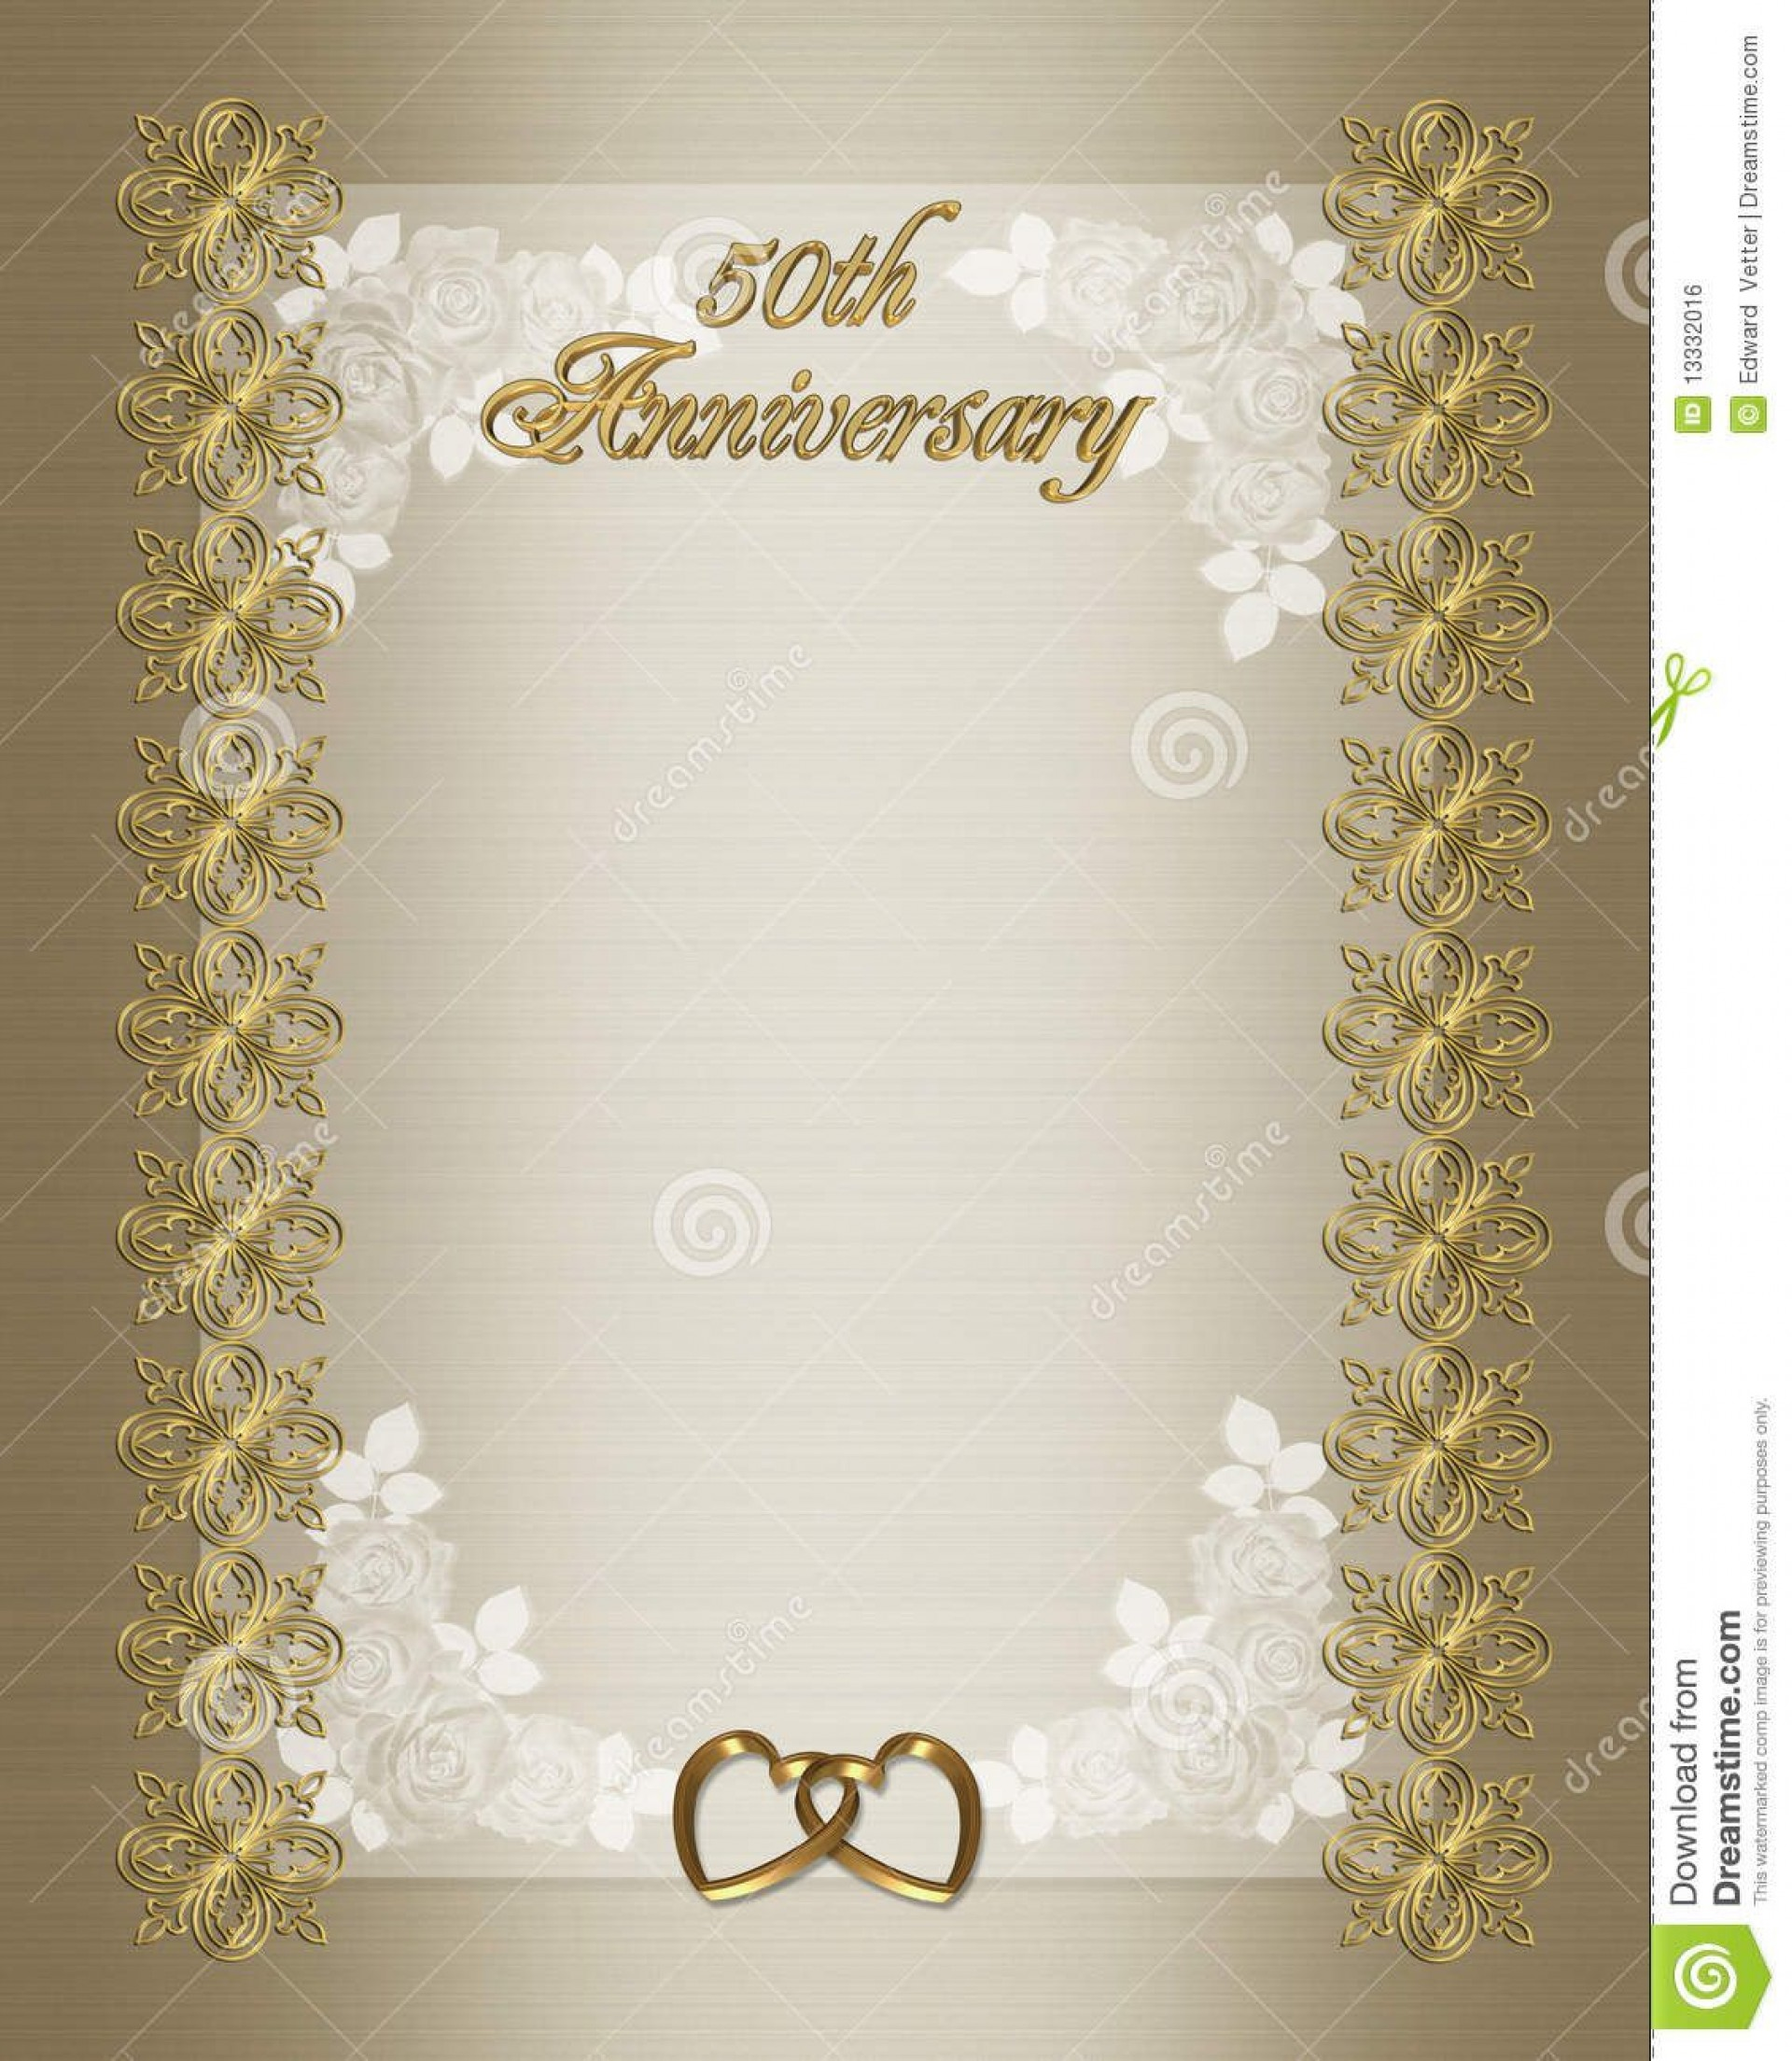 005 Fantastic Free 50th Wedding Anniversary Party Invitation Template Image  Templates1920